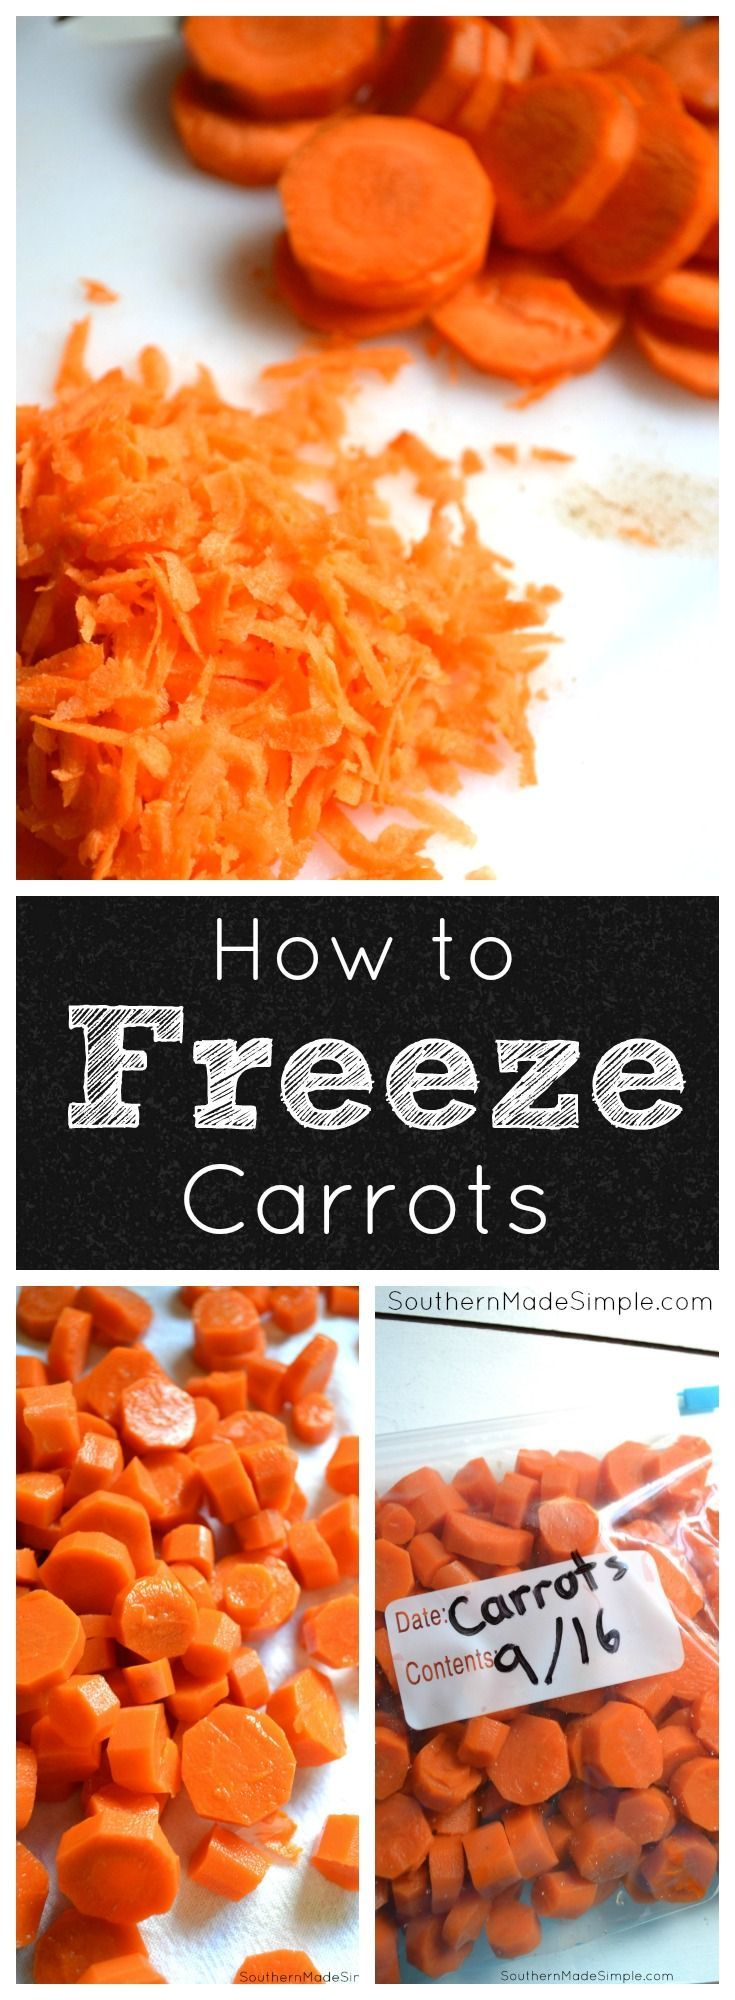 A step by step tutorial on how to properly freeze carrots. No more throwing out produce!